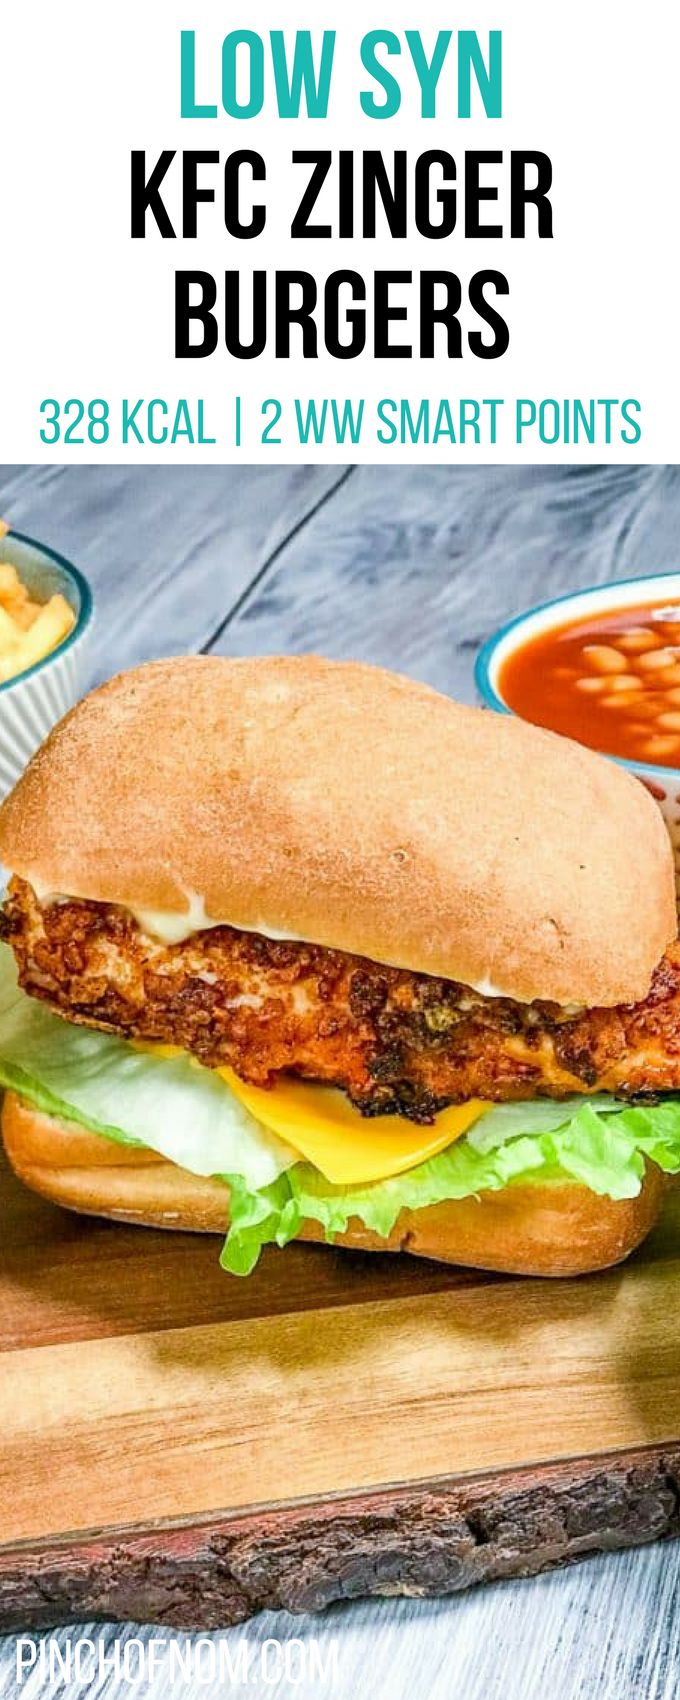 Low Syn KFC Zinger Burgers | Pinch Of Nom Slimming World Recipes 328 kcal | 2 Syns | 2 Weight Watchers Smart Points